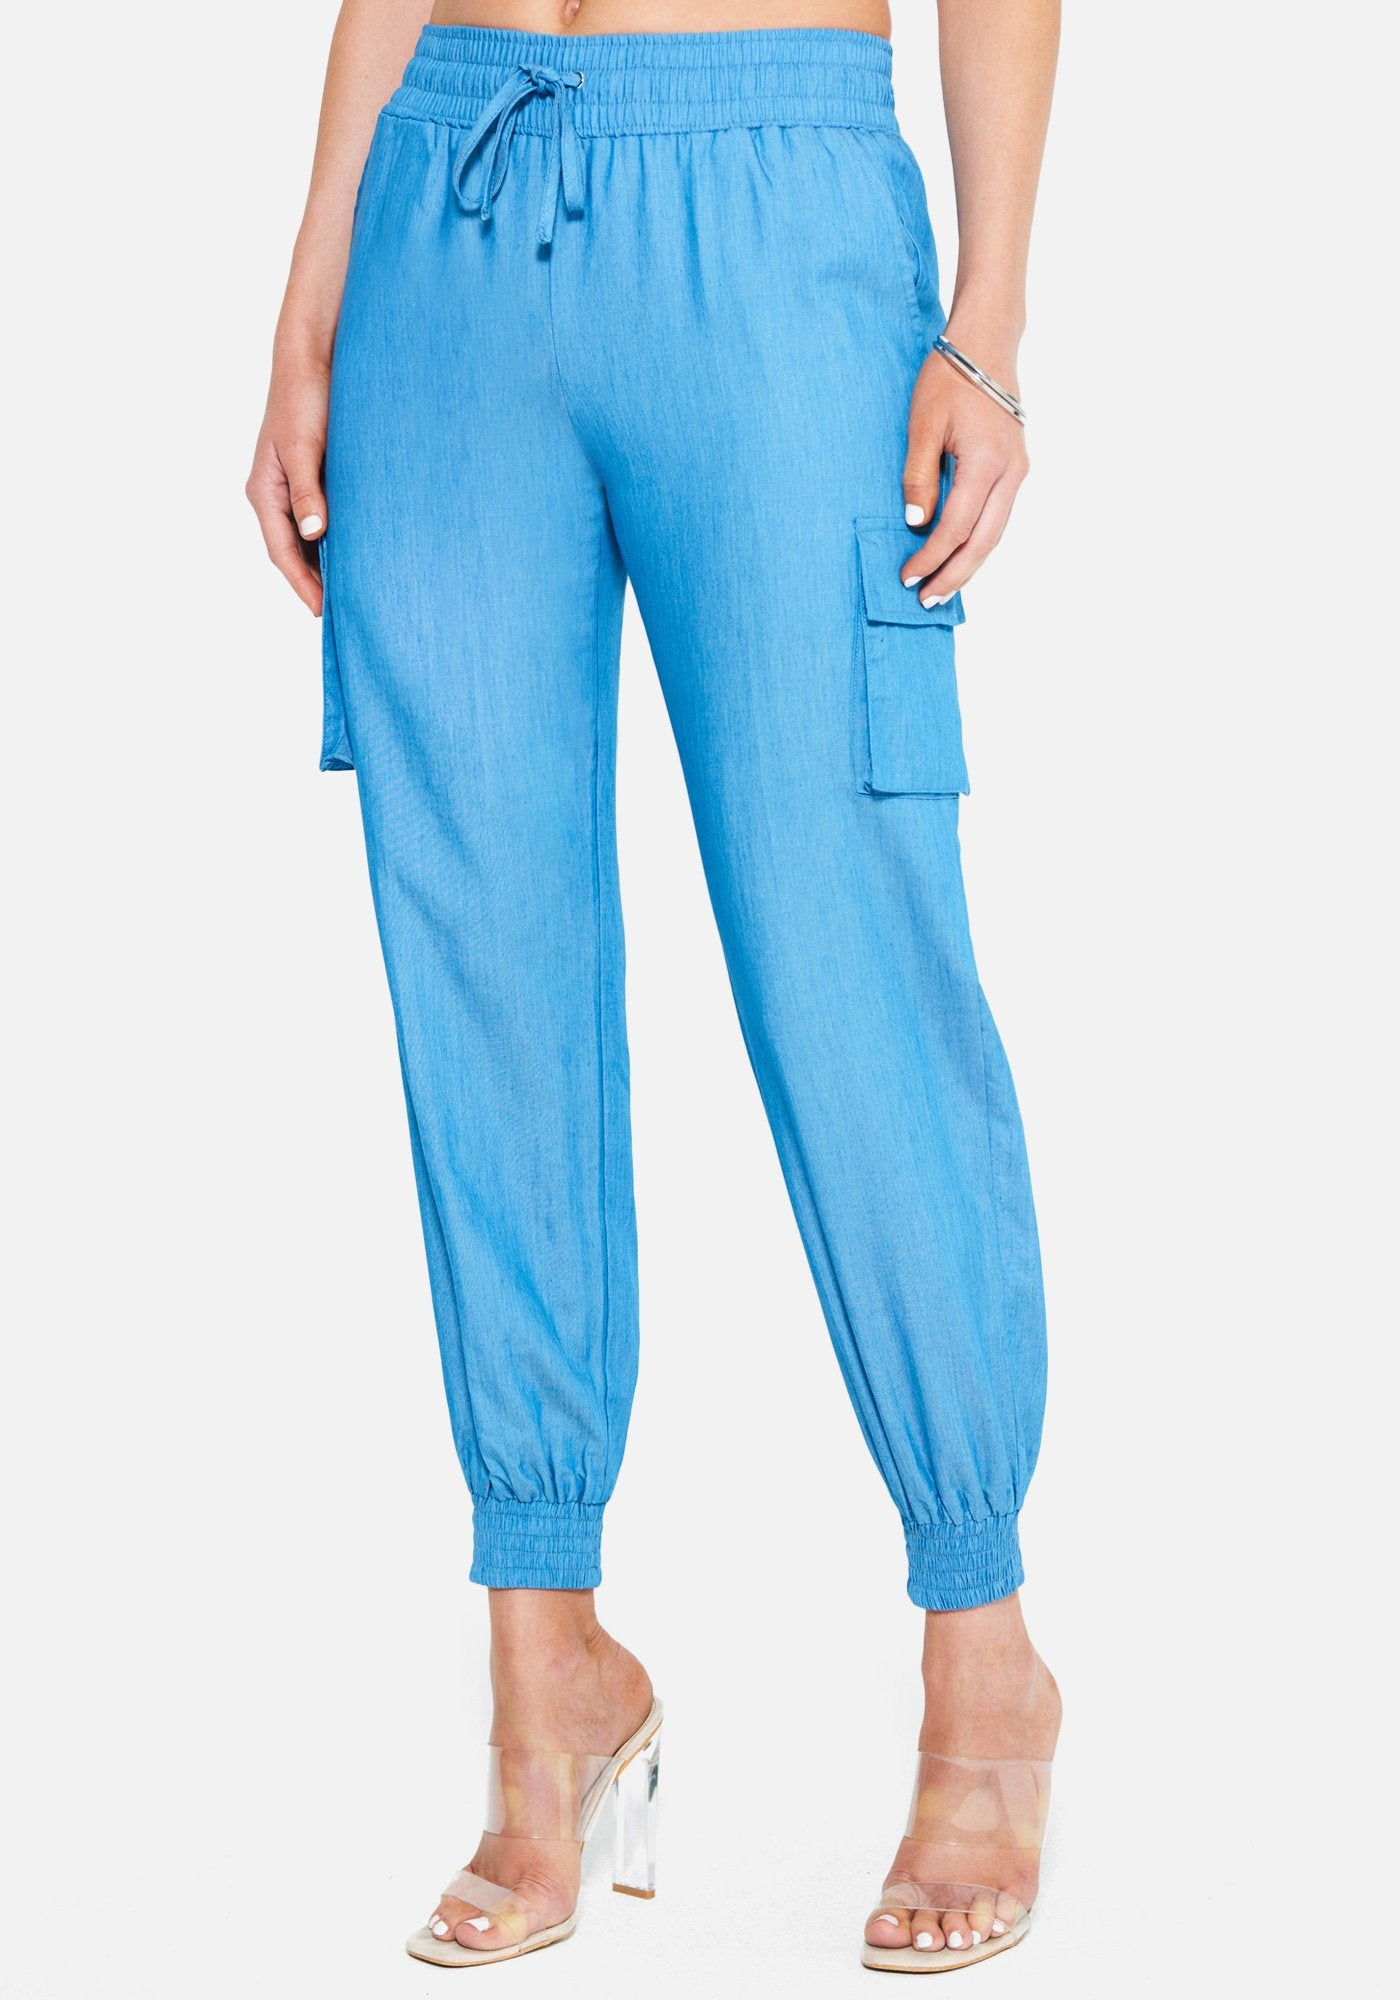 Bebe Women's Chambray Smocked Cargo Jogger Pant, Size XXS in Light Blue Wash